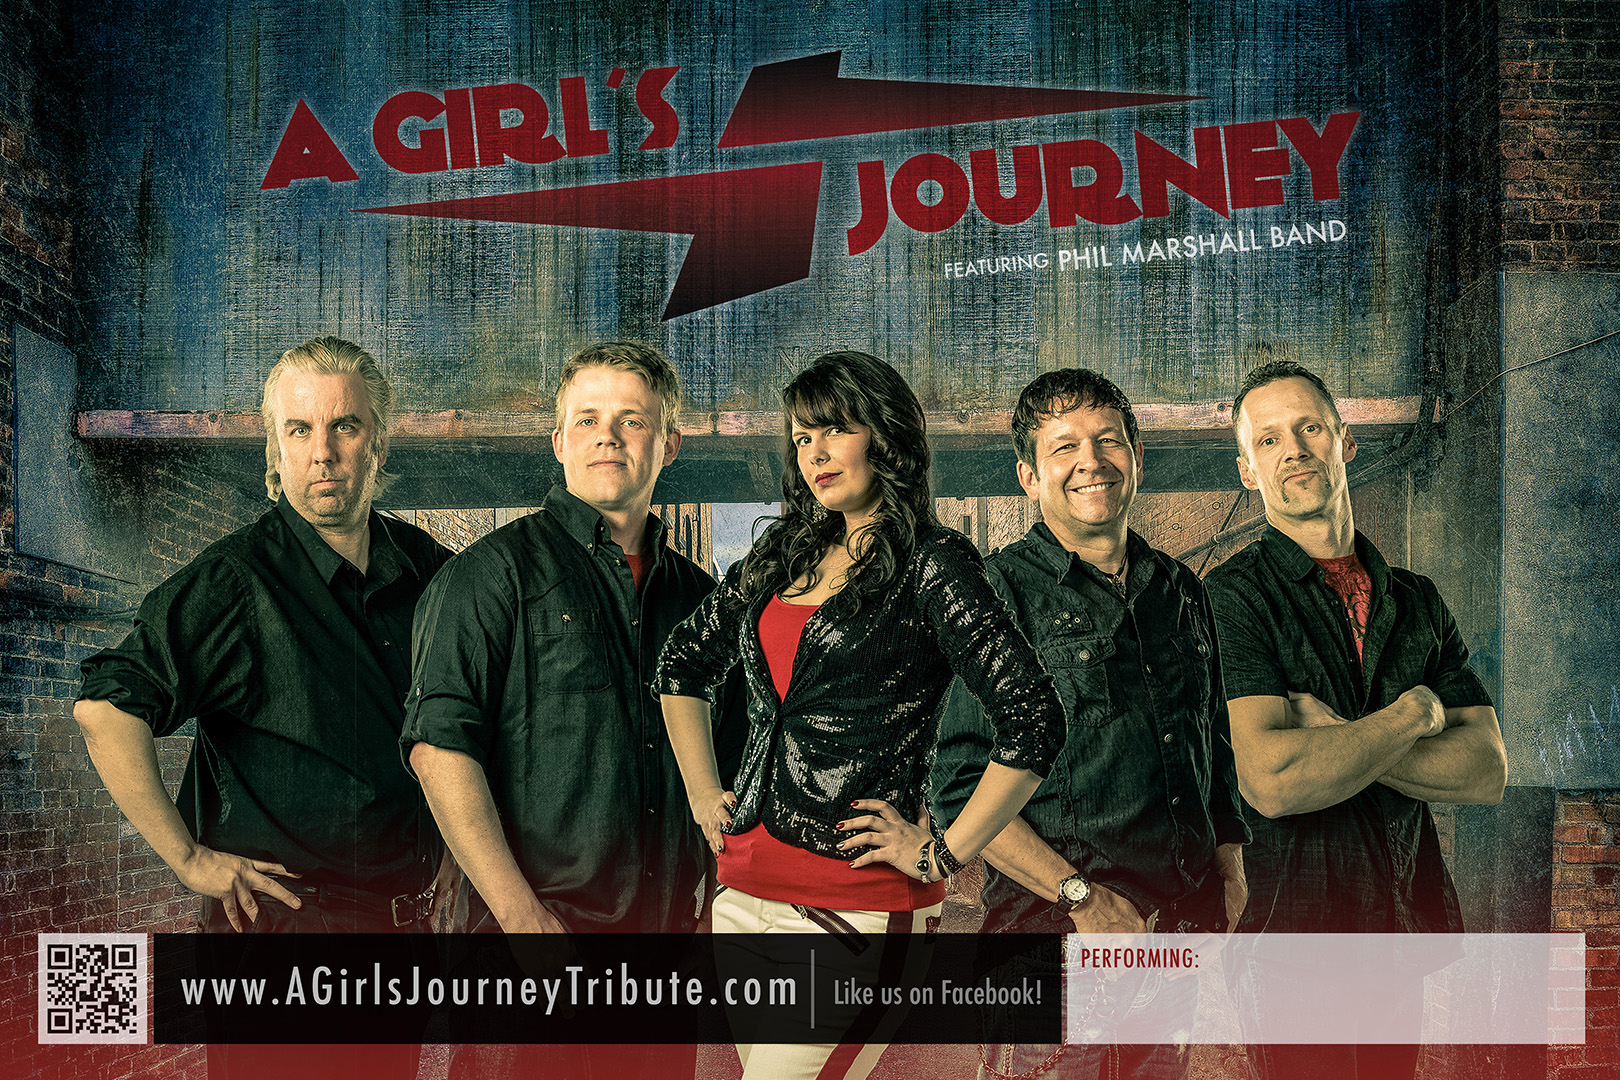 GirlsJourney_11x17Poster.jpg